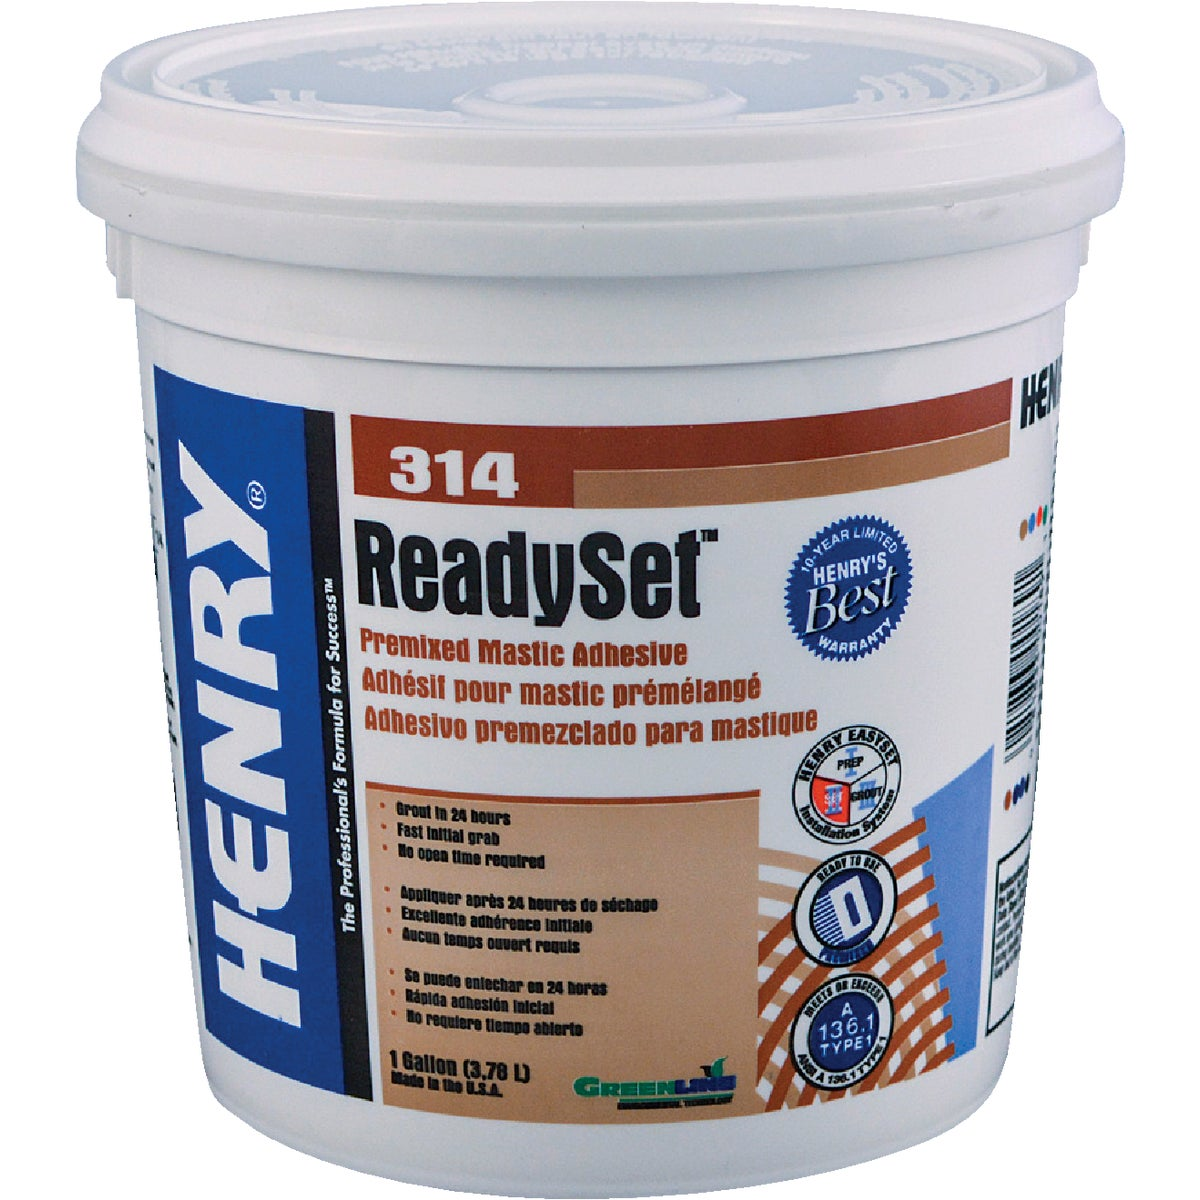 GL H314 CERAMIC ADHESIVE - 12256 by Henry W W Company